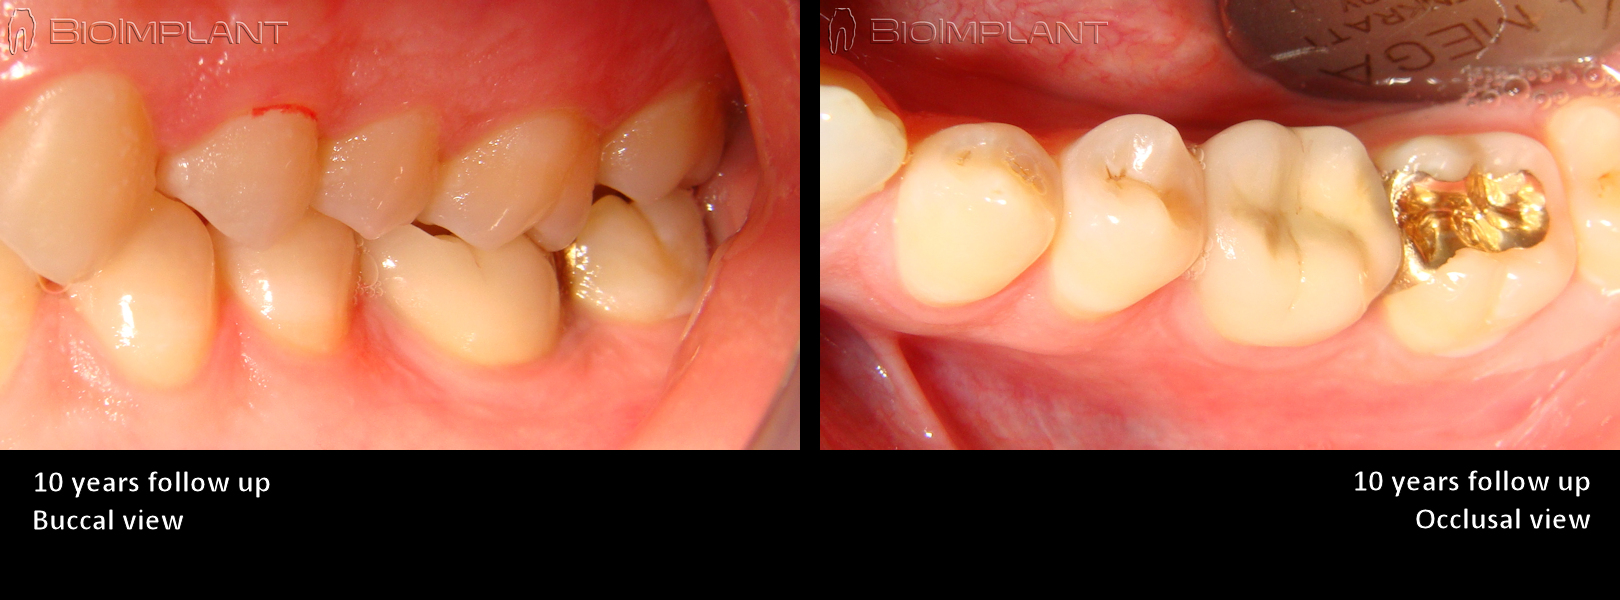 10 years follow up bioimplant keramik implantat